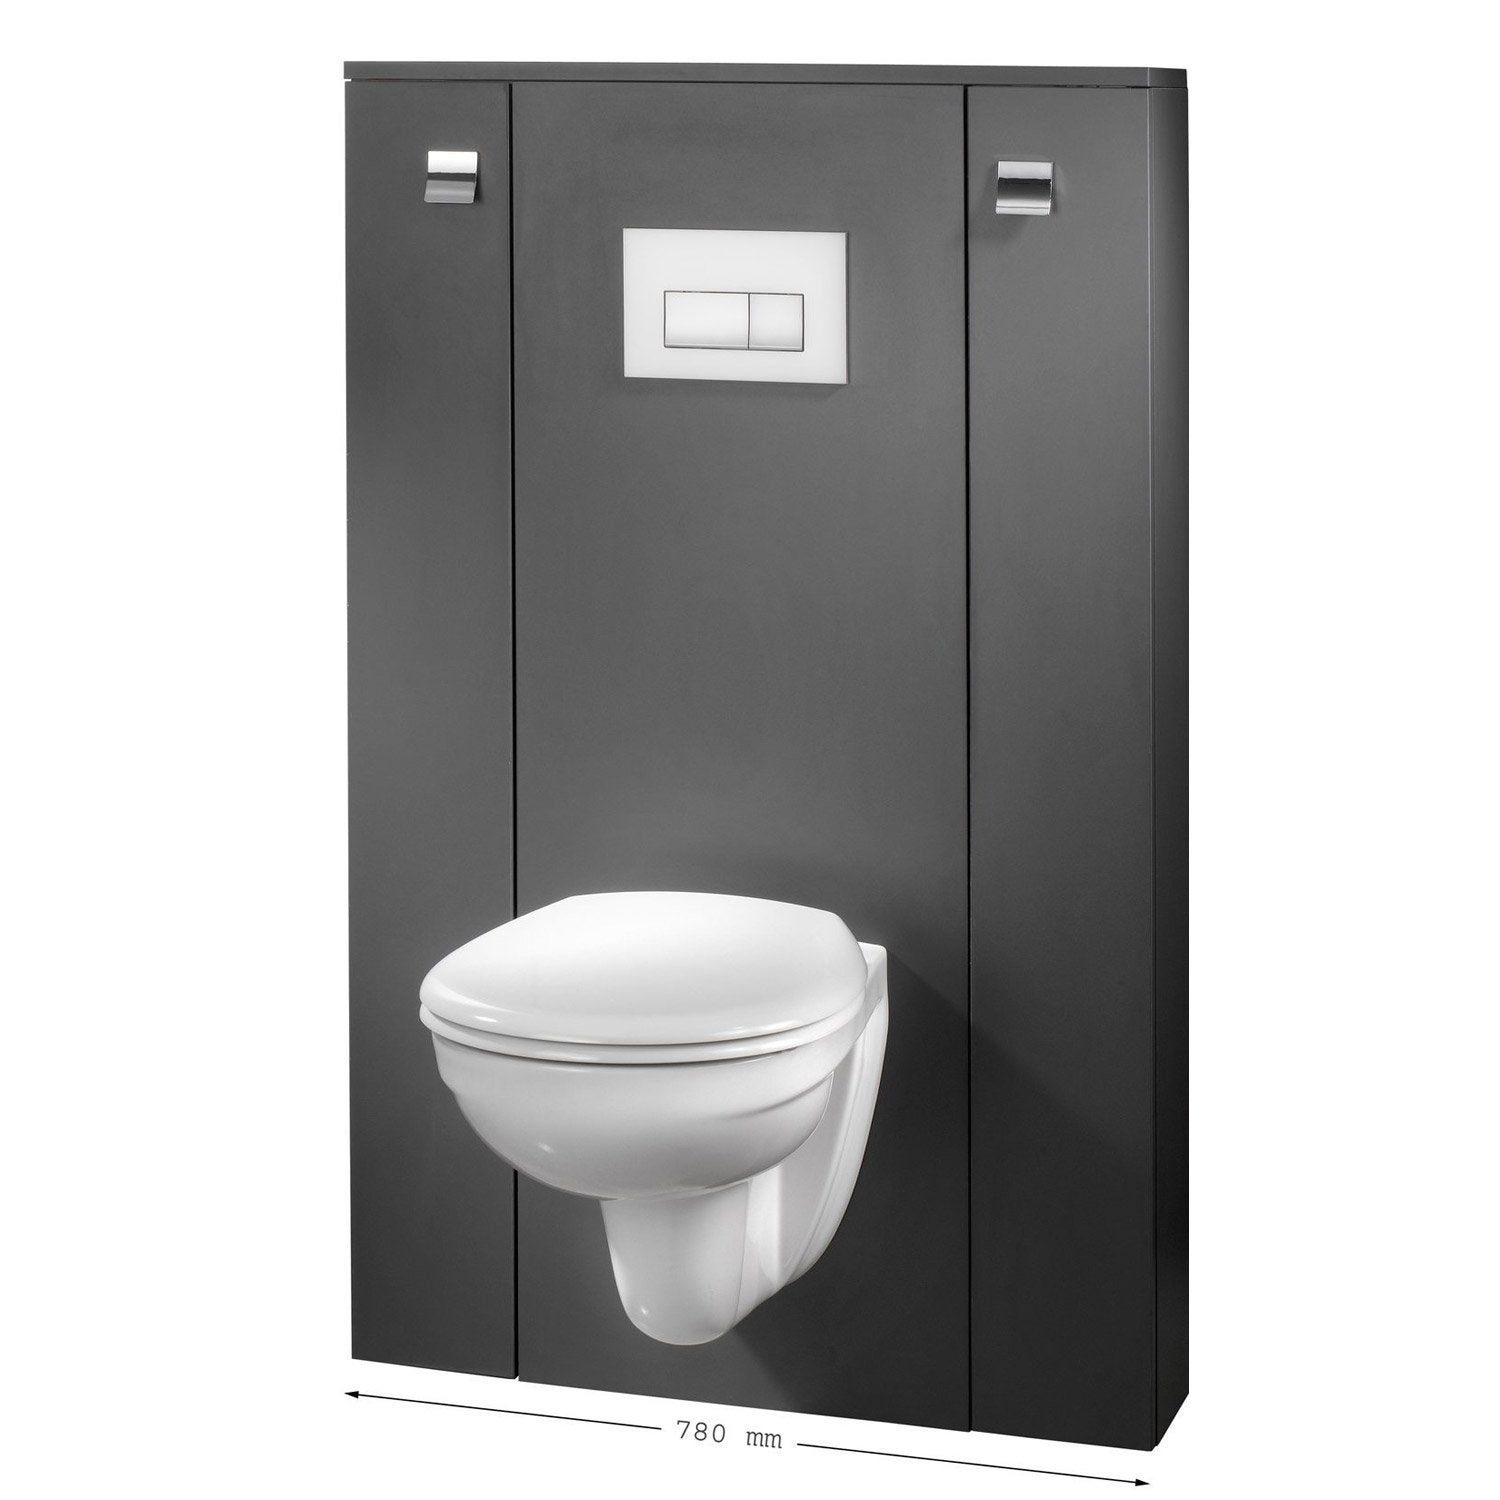 coffrage wc suspendu avec rangement amazing meuble wc ikea meuble rangement wc ikea rangement. Black Bedroom Furniture Sets. Home Design Ideas